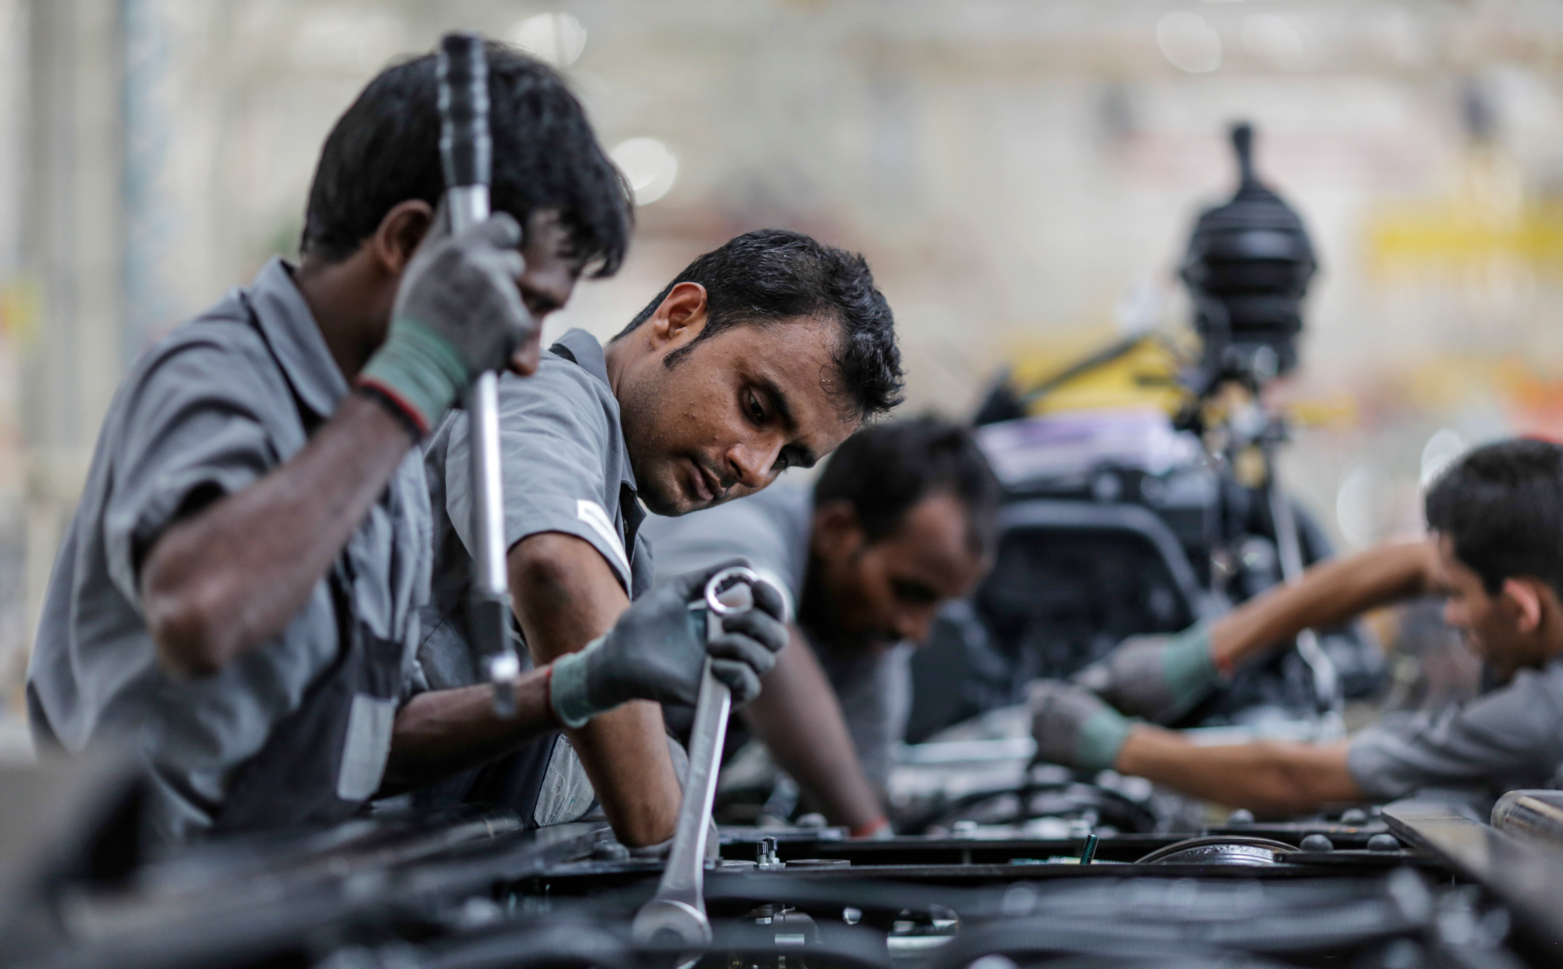 India's workforce is still not fully trained to handle Russian technology. Source: Getty Images